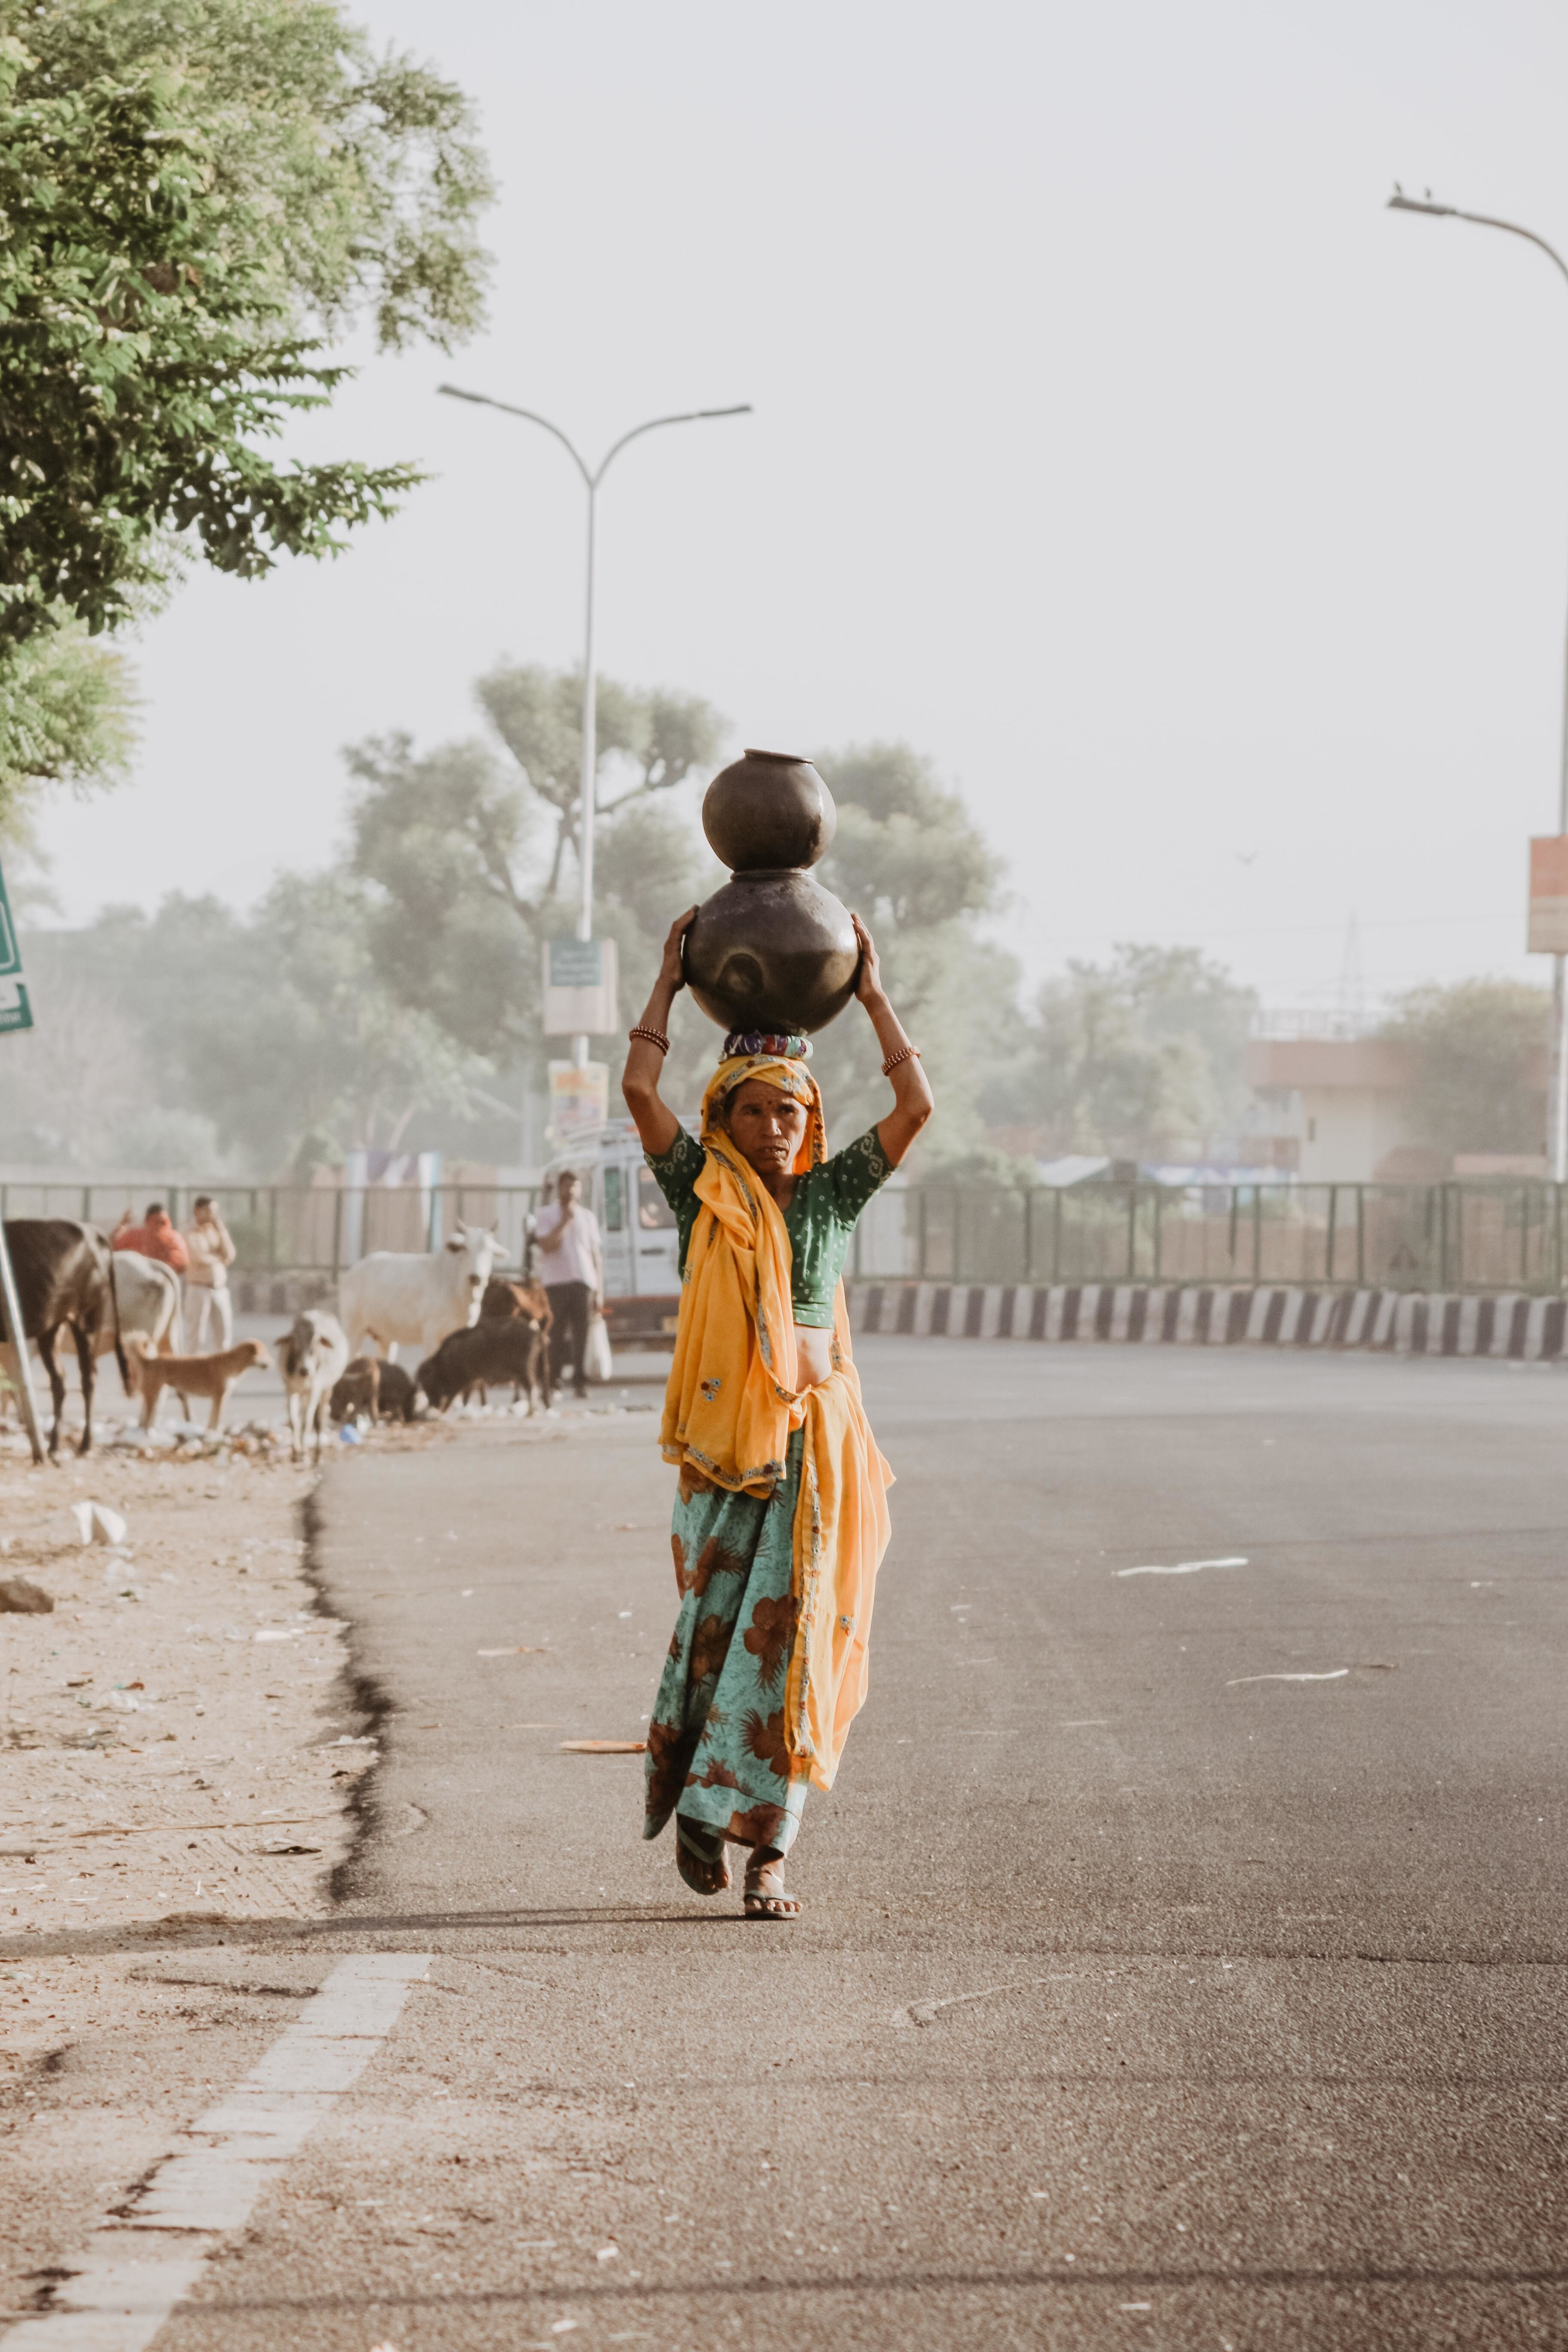 An Indian woman carries a jar of water on her head